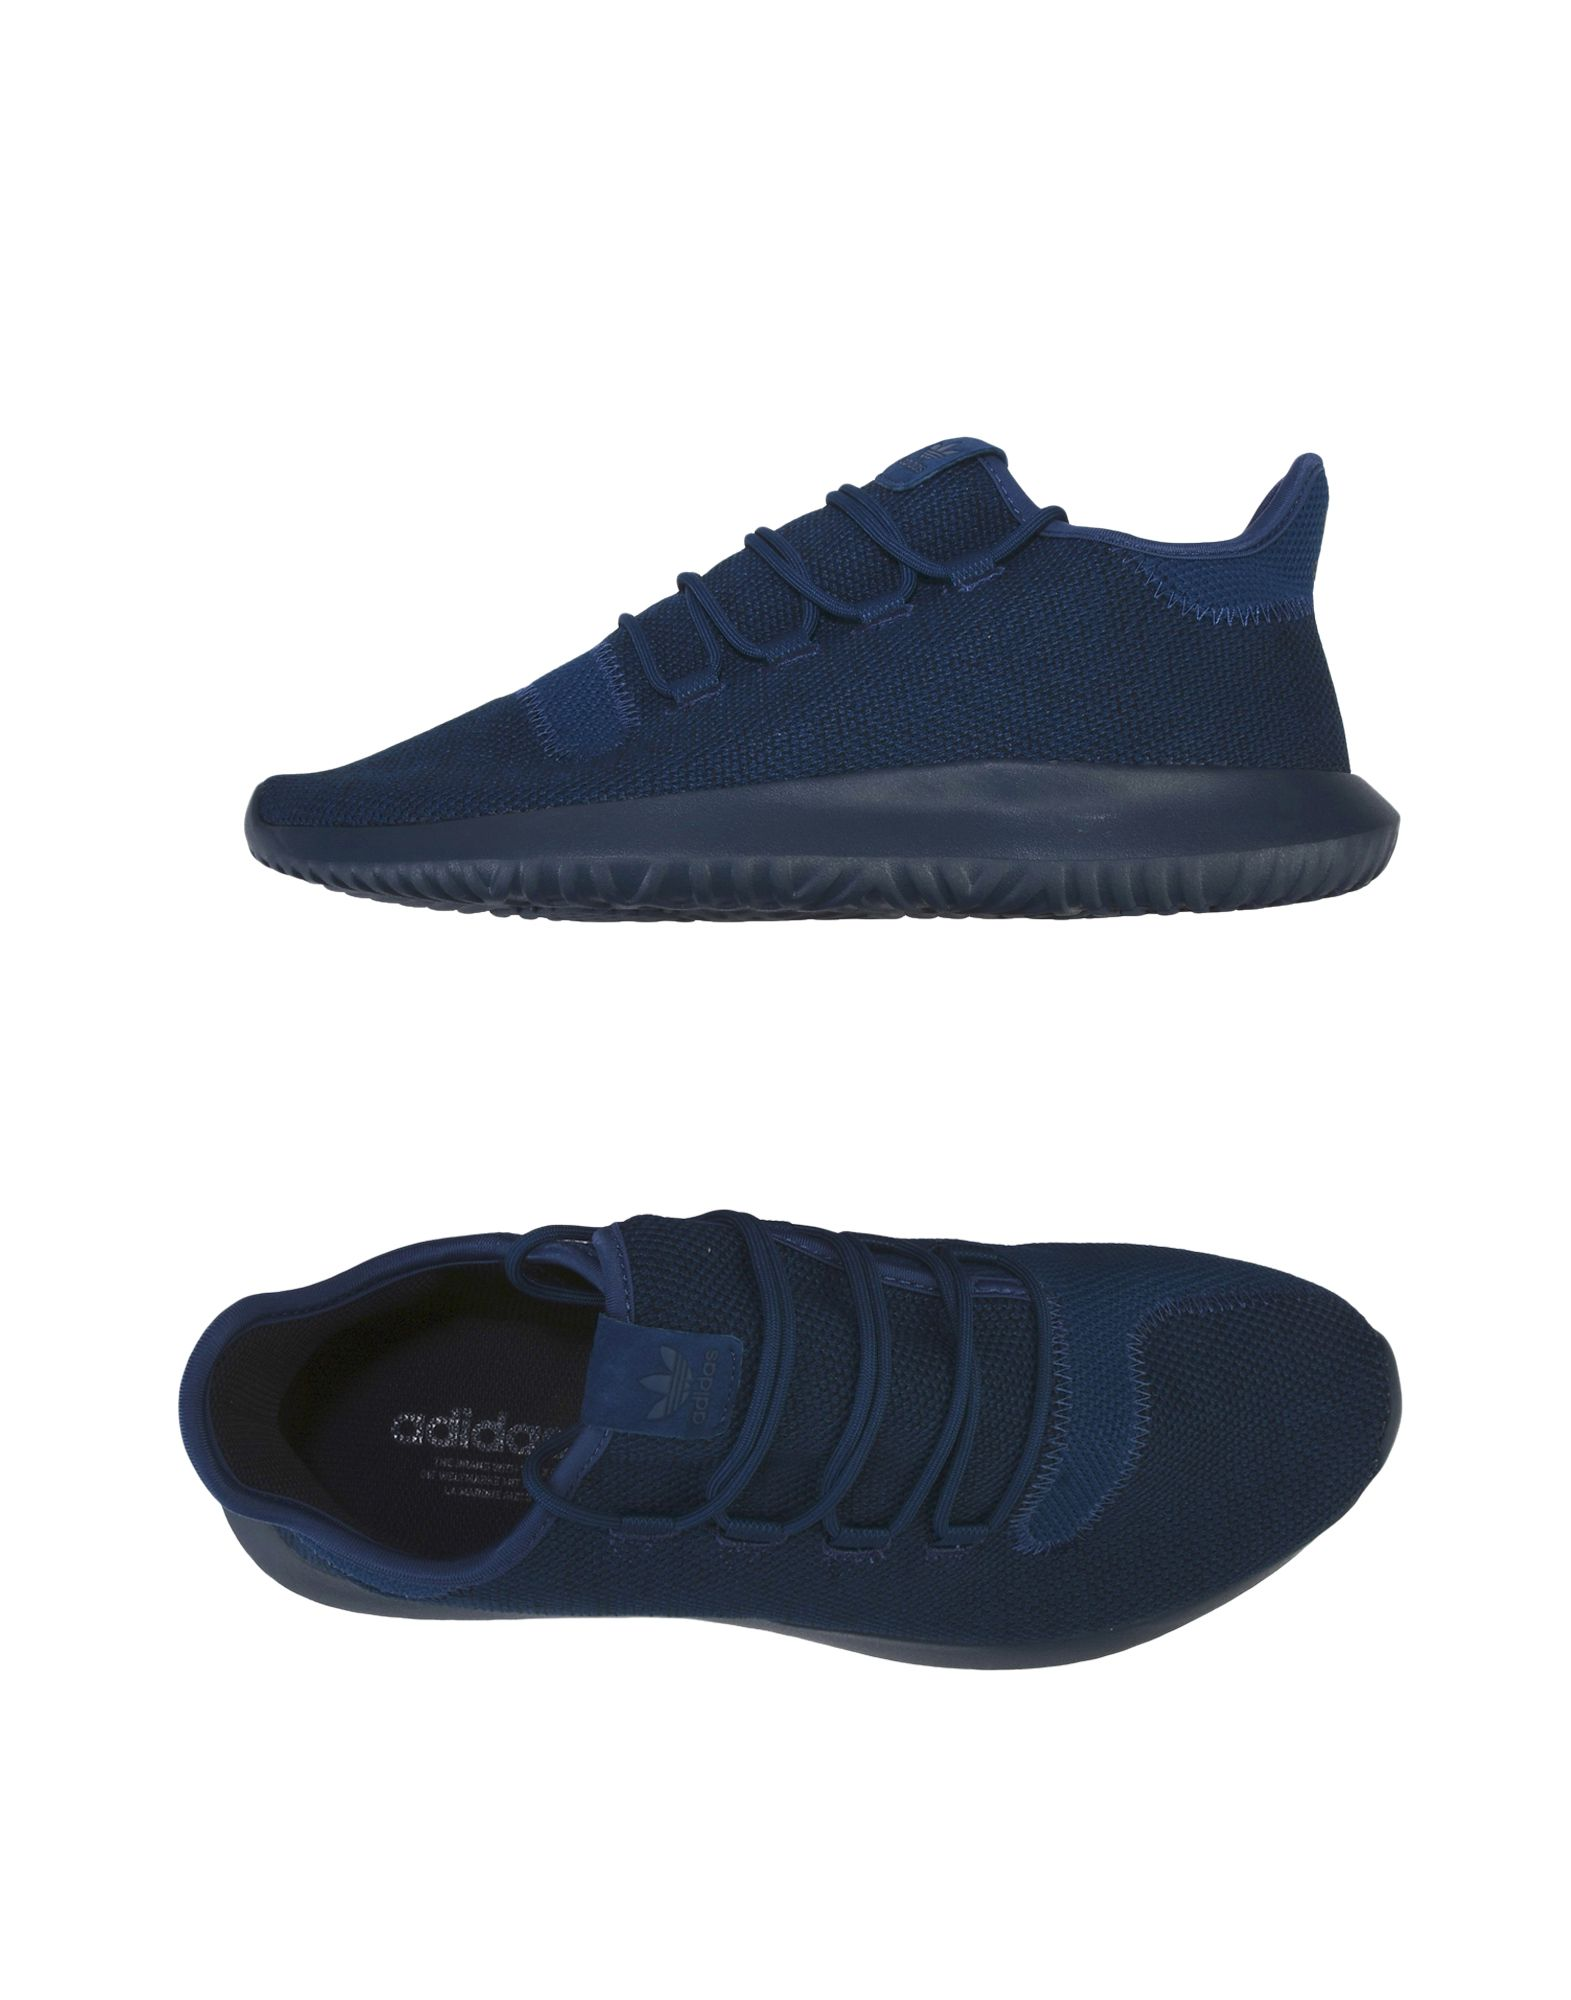 Sneakers Adidas Originals Tubular Shadow Knit - Homme - Sneakers Adidas Originals sur